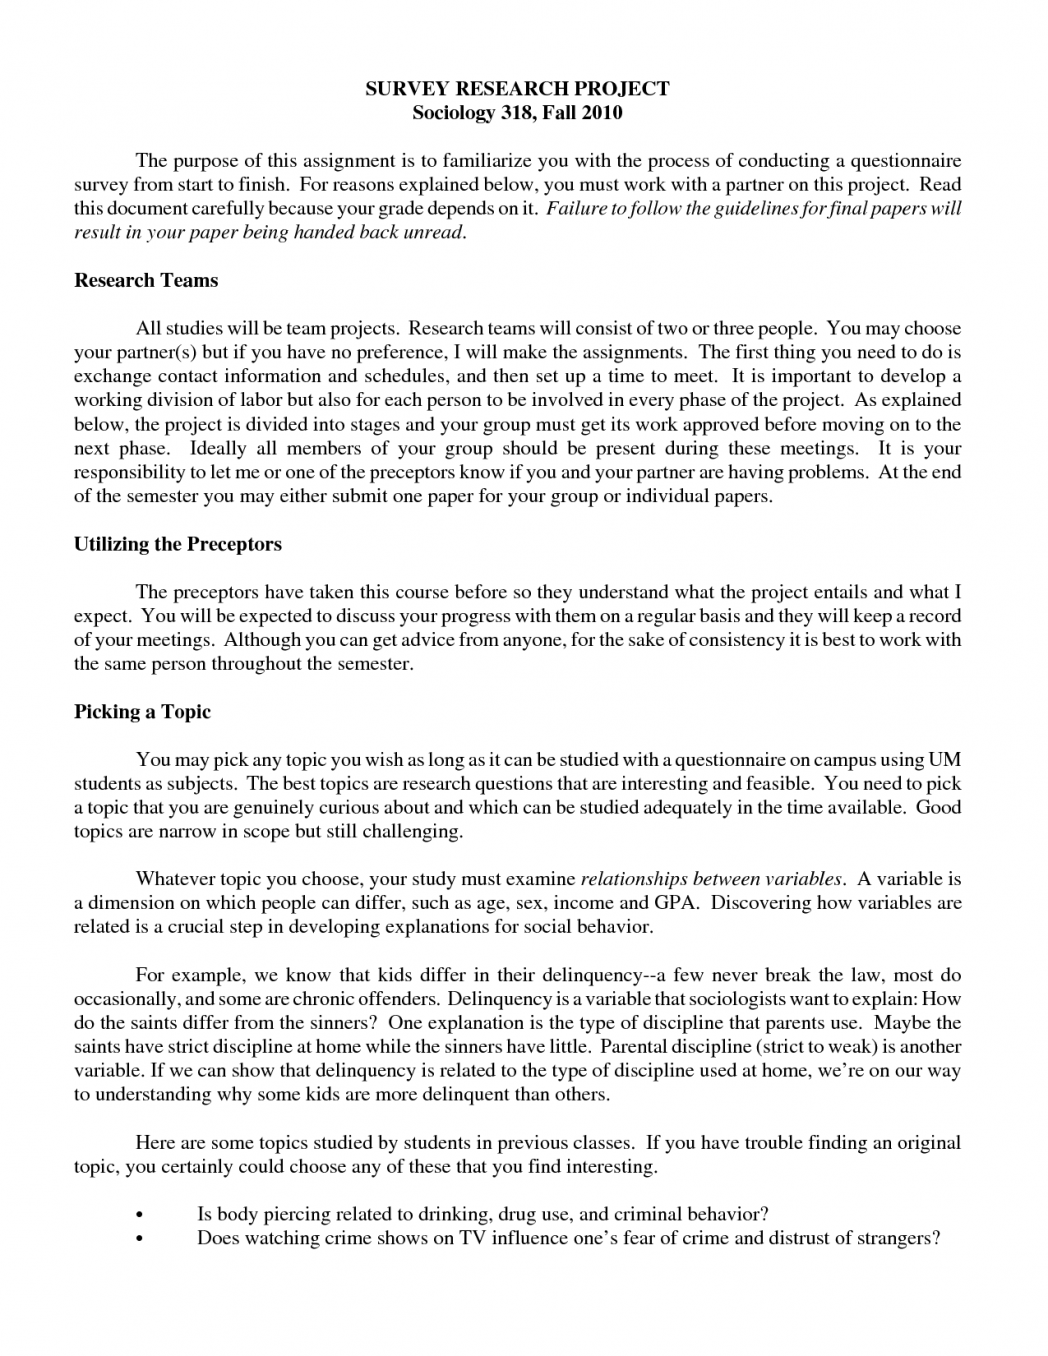 008 How To Write Good Hook For An Essays Of Hooks Research Define Transitional In Writing Bcl12 The Type 1048x1356 Staggering A Essay Analytical Sentence Argumentative Full